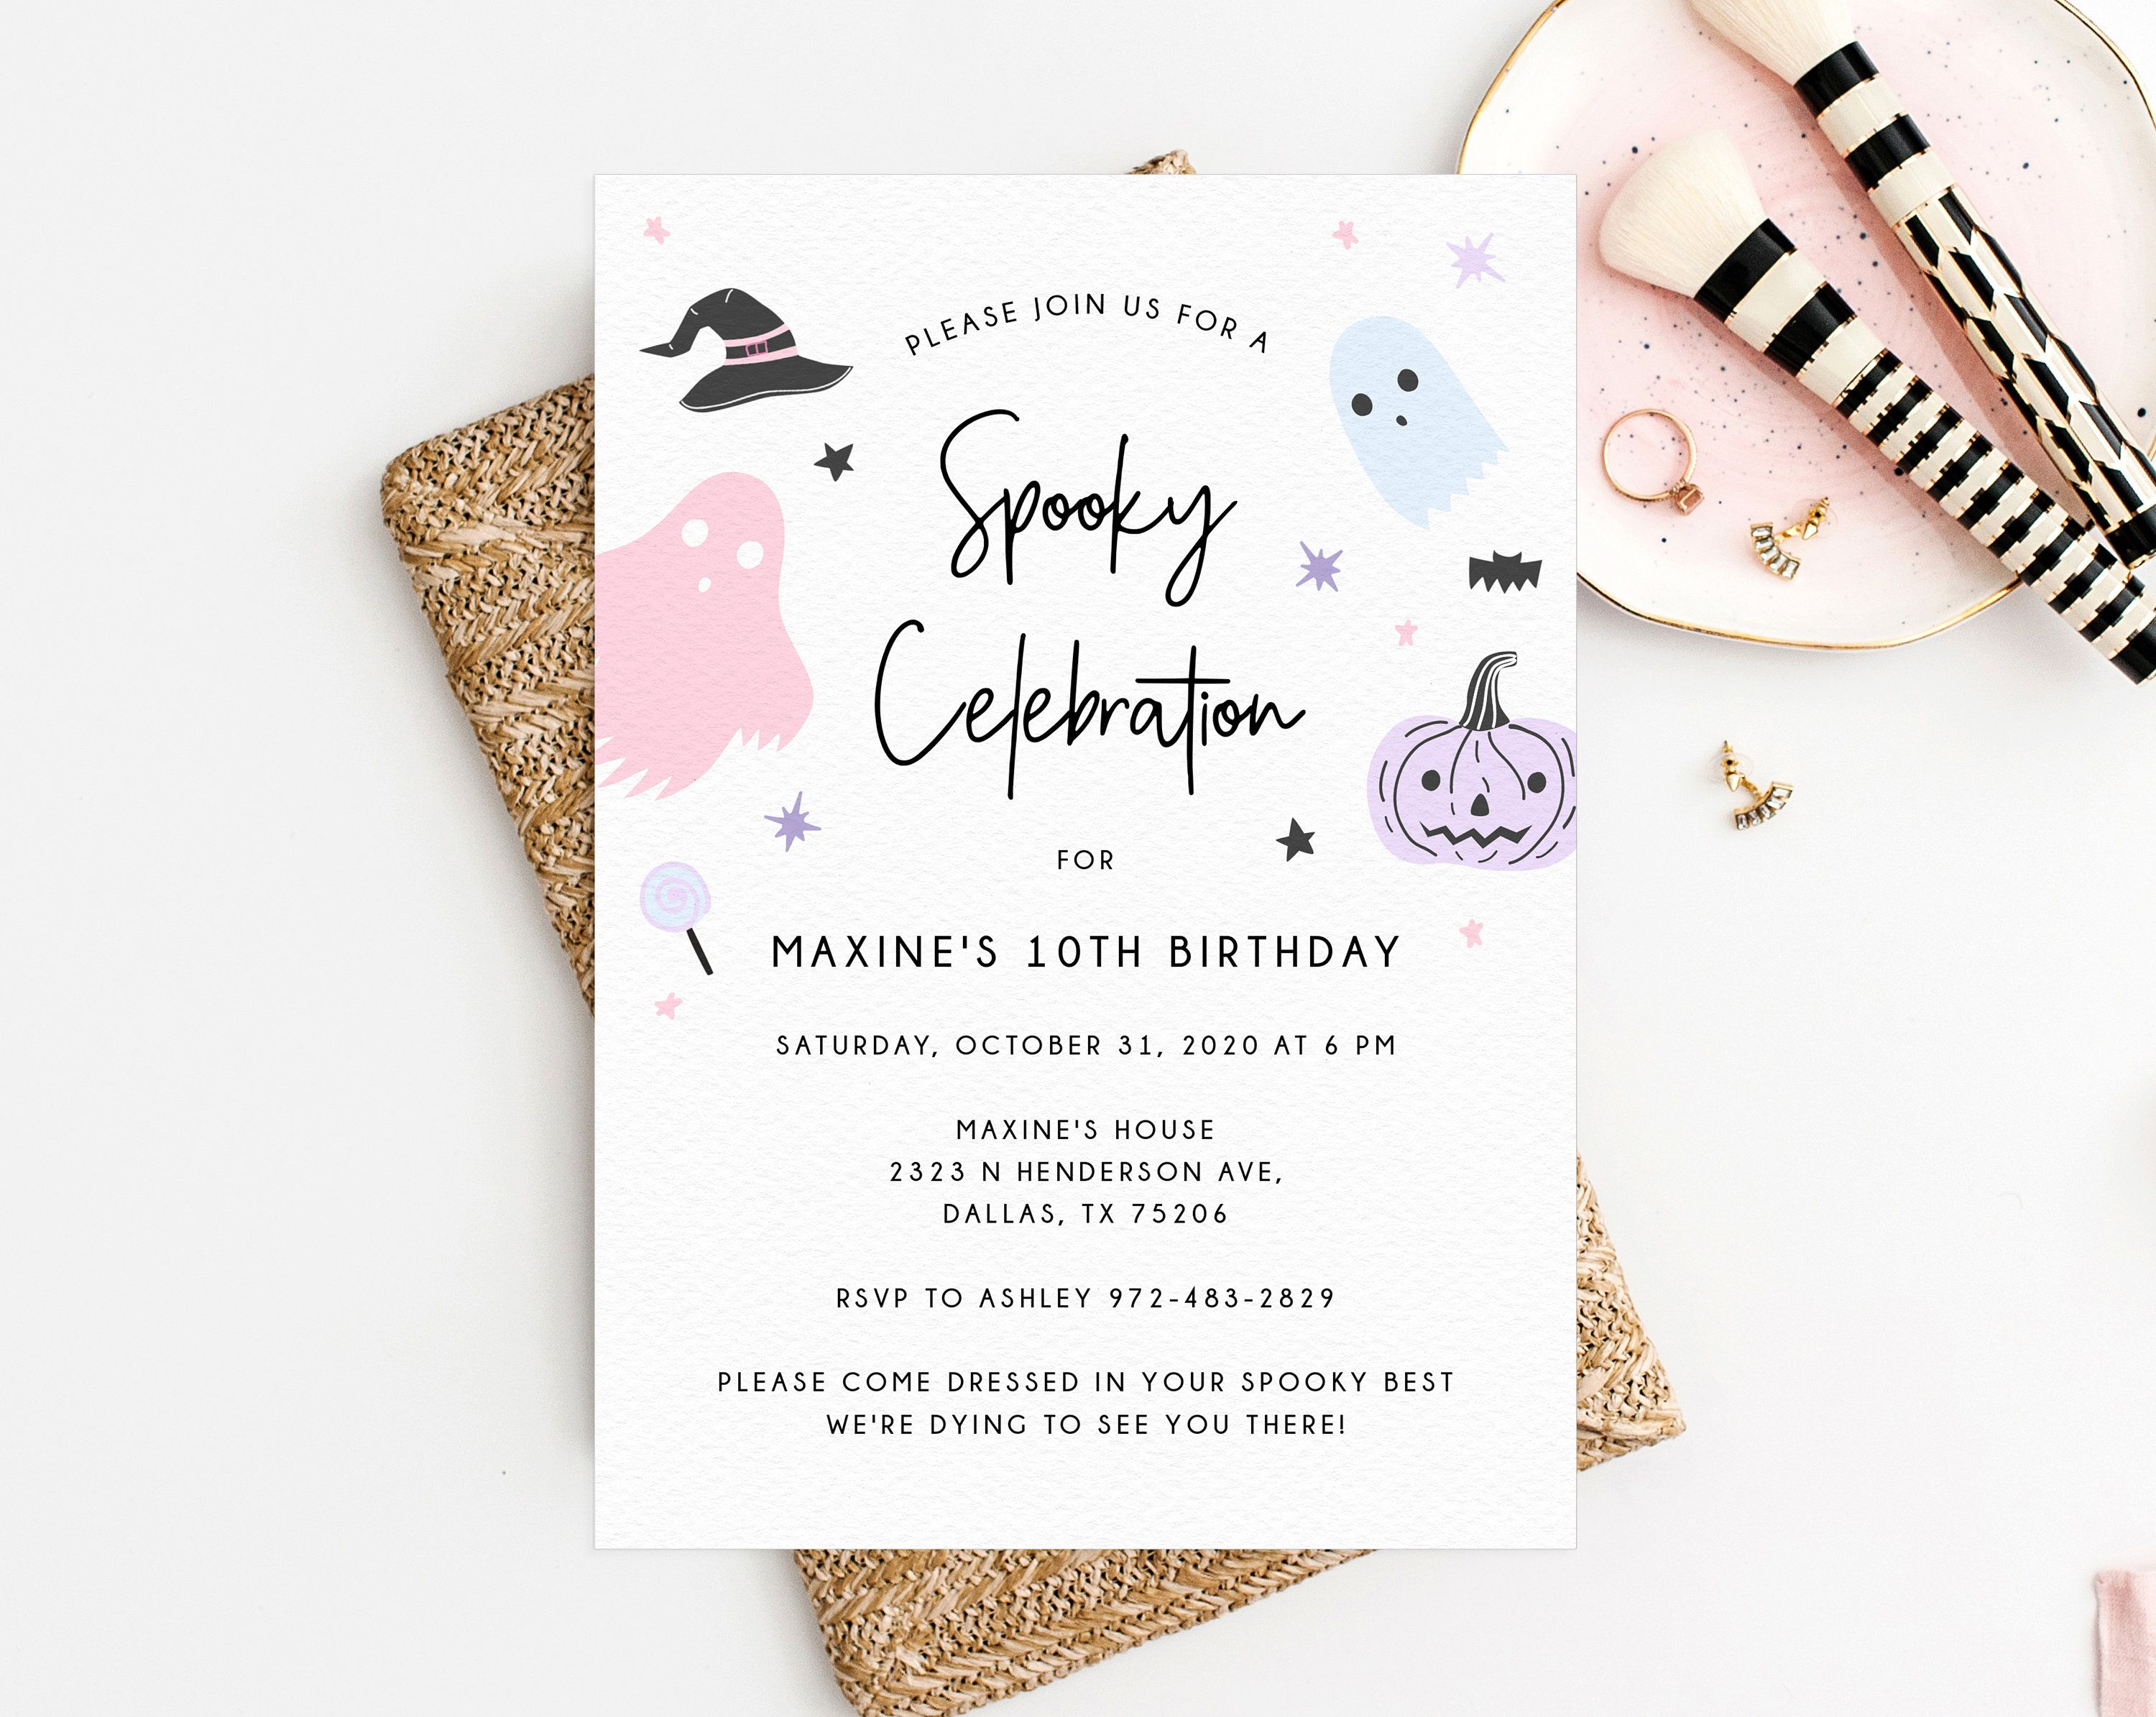 1st Ave Halloween Party 2020 Halloween Party Invitation Template, Printable Pastel Halloween